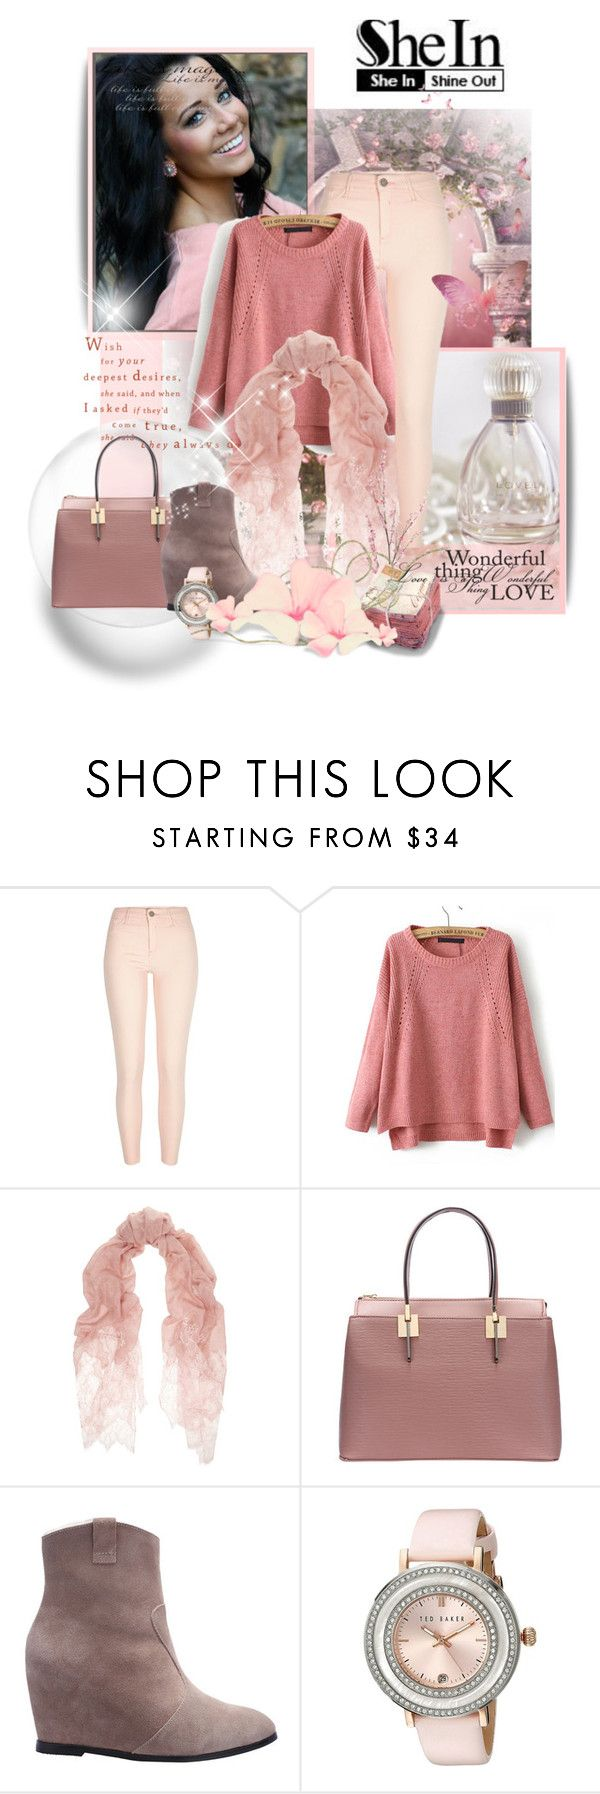 """""""Sheinside"""" by marinadusanic ❤ liked on Polyvore featuring Valentino, Ted Baker, Pier 1 Imports and vintage"""